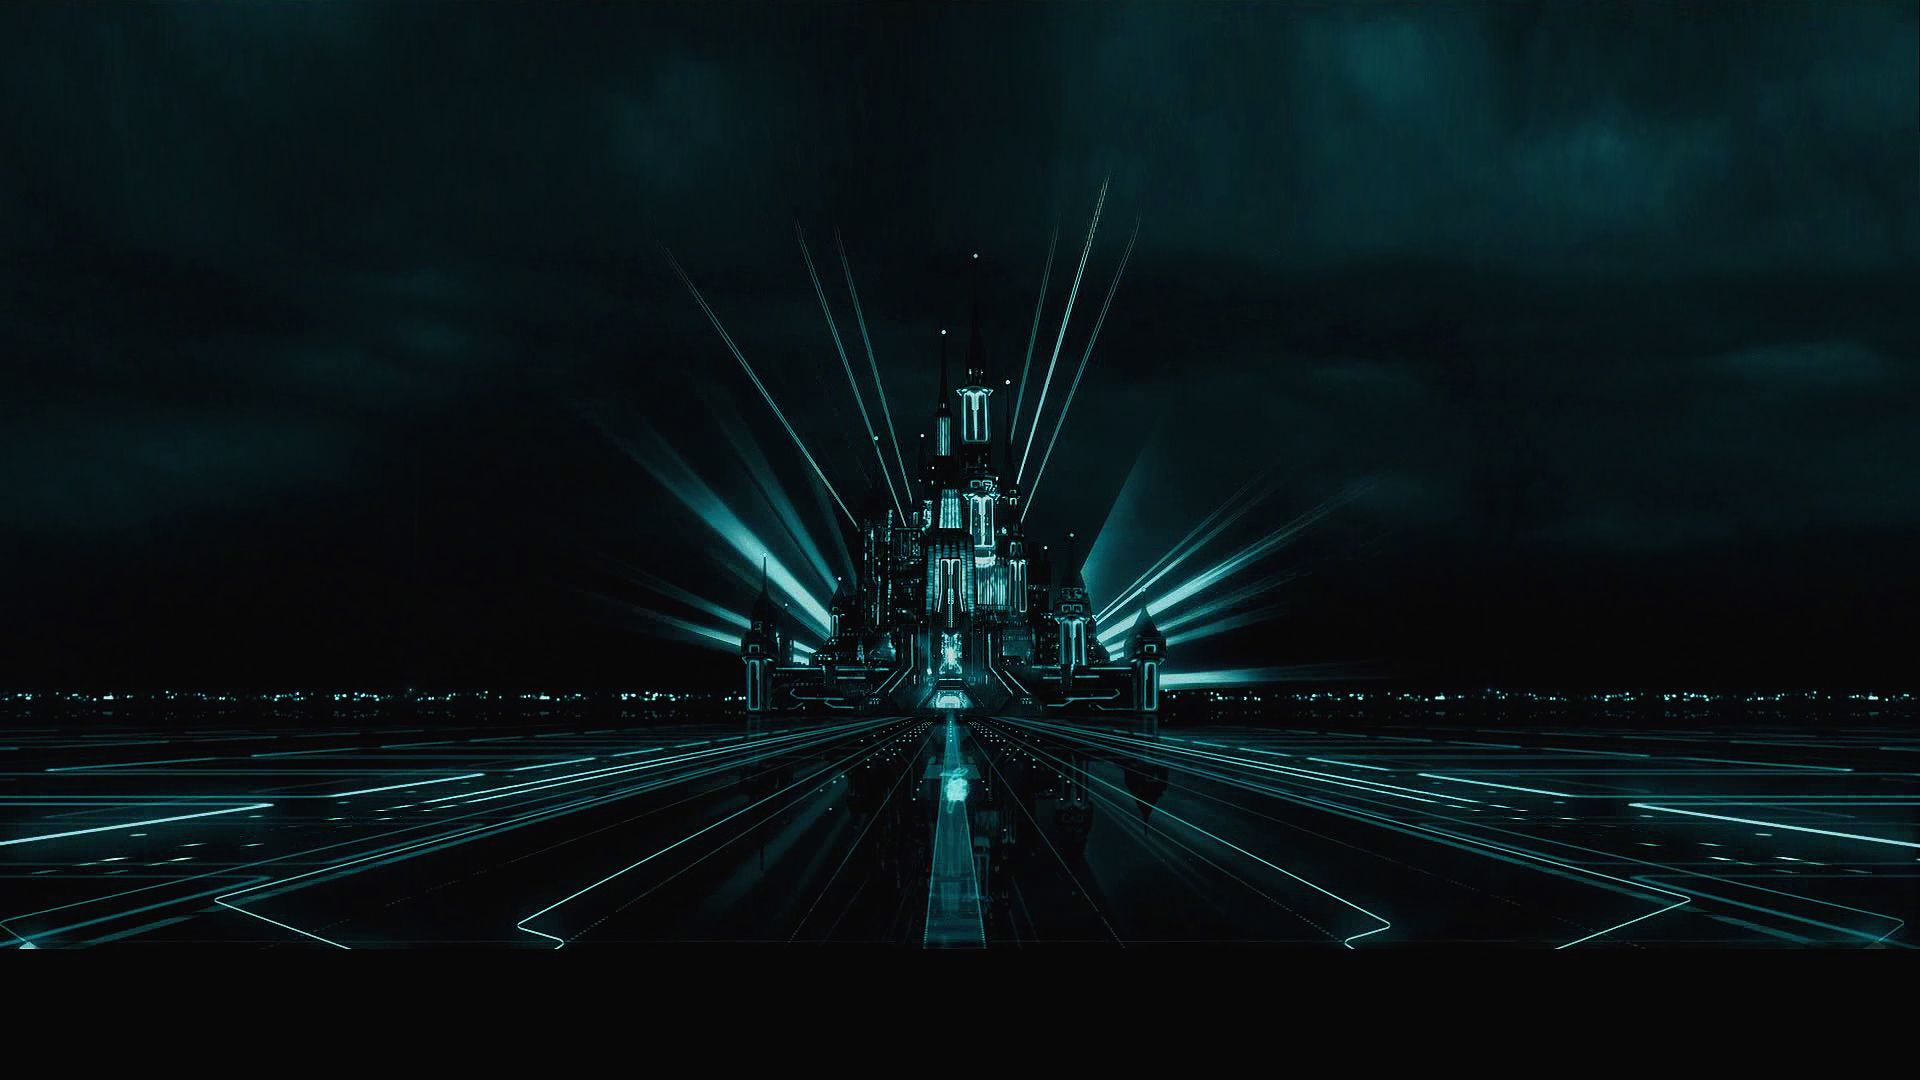 Everyone Who Knows Me Knows My Favorite Movie 3 Tron Legacy Tron Tron Light Cycle